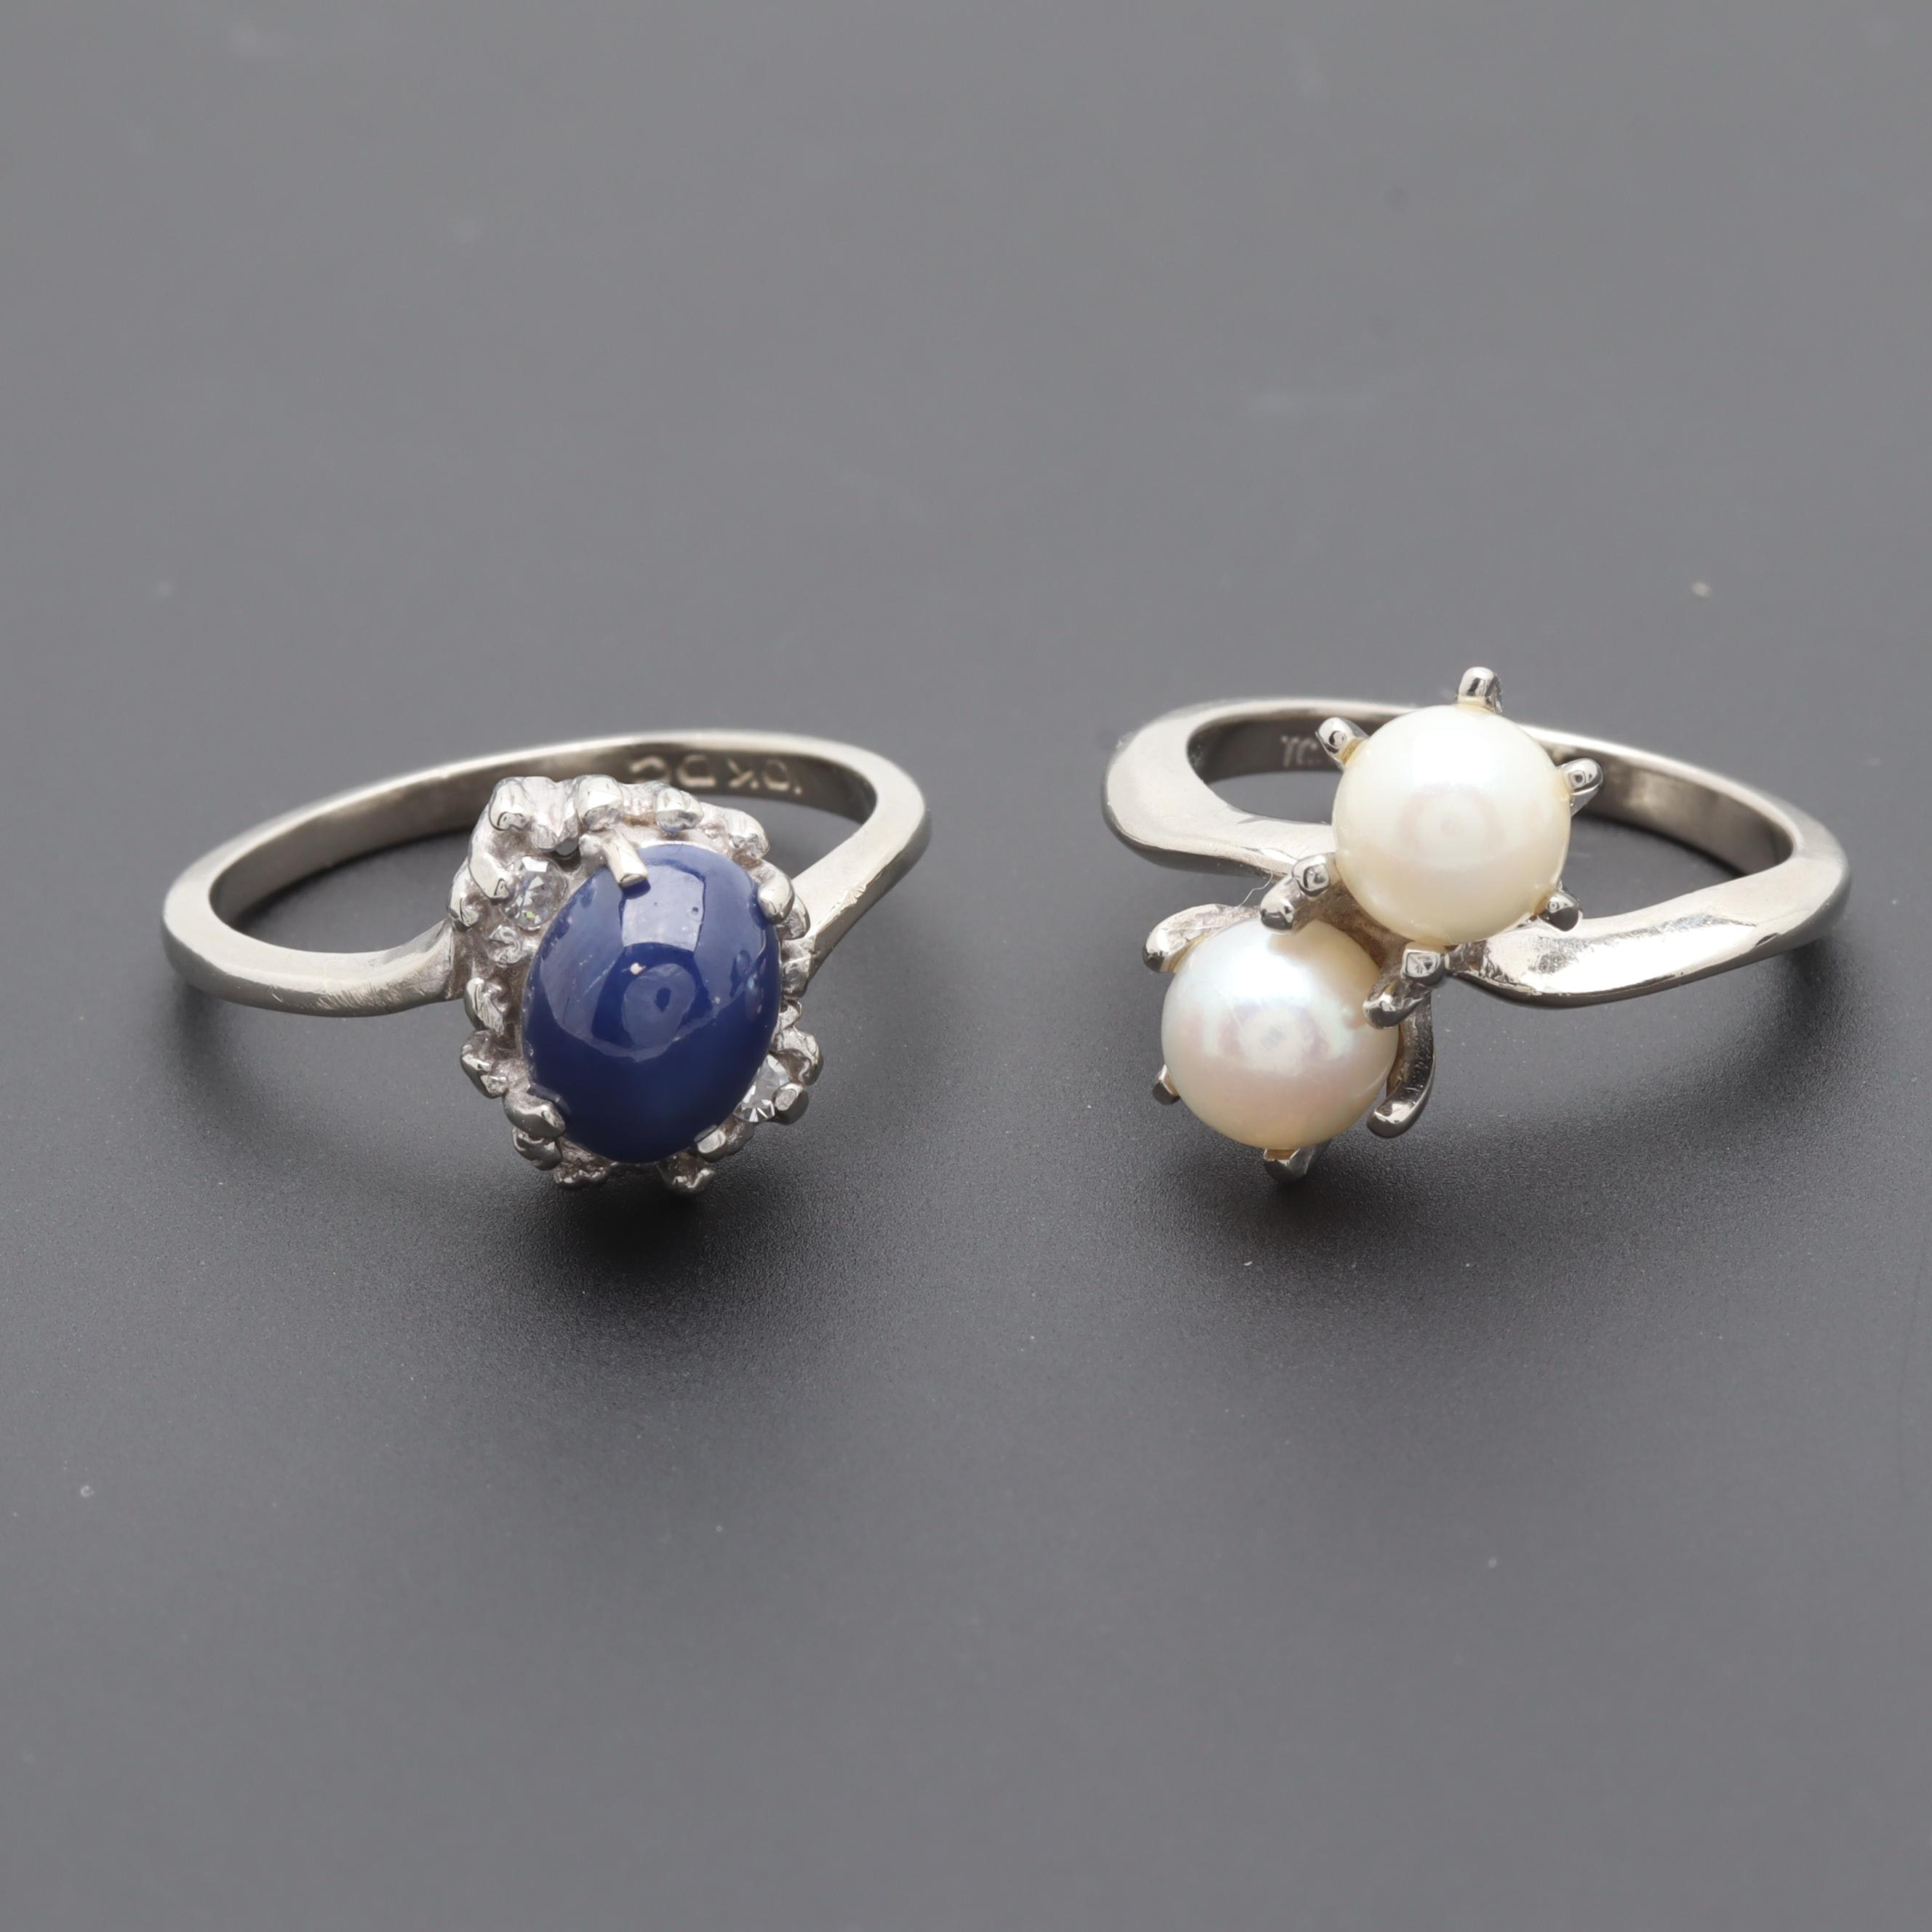 10K White Gold Sapphire and Cultured Pearl Rings Including Diamonds